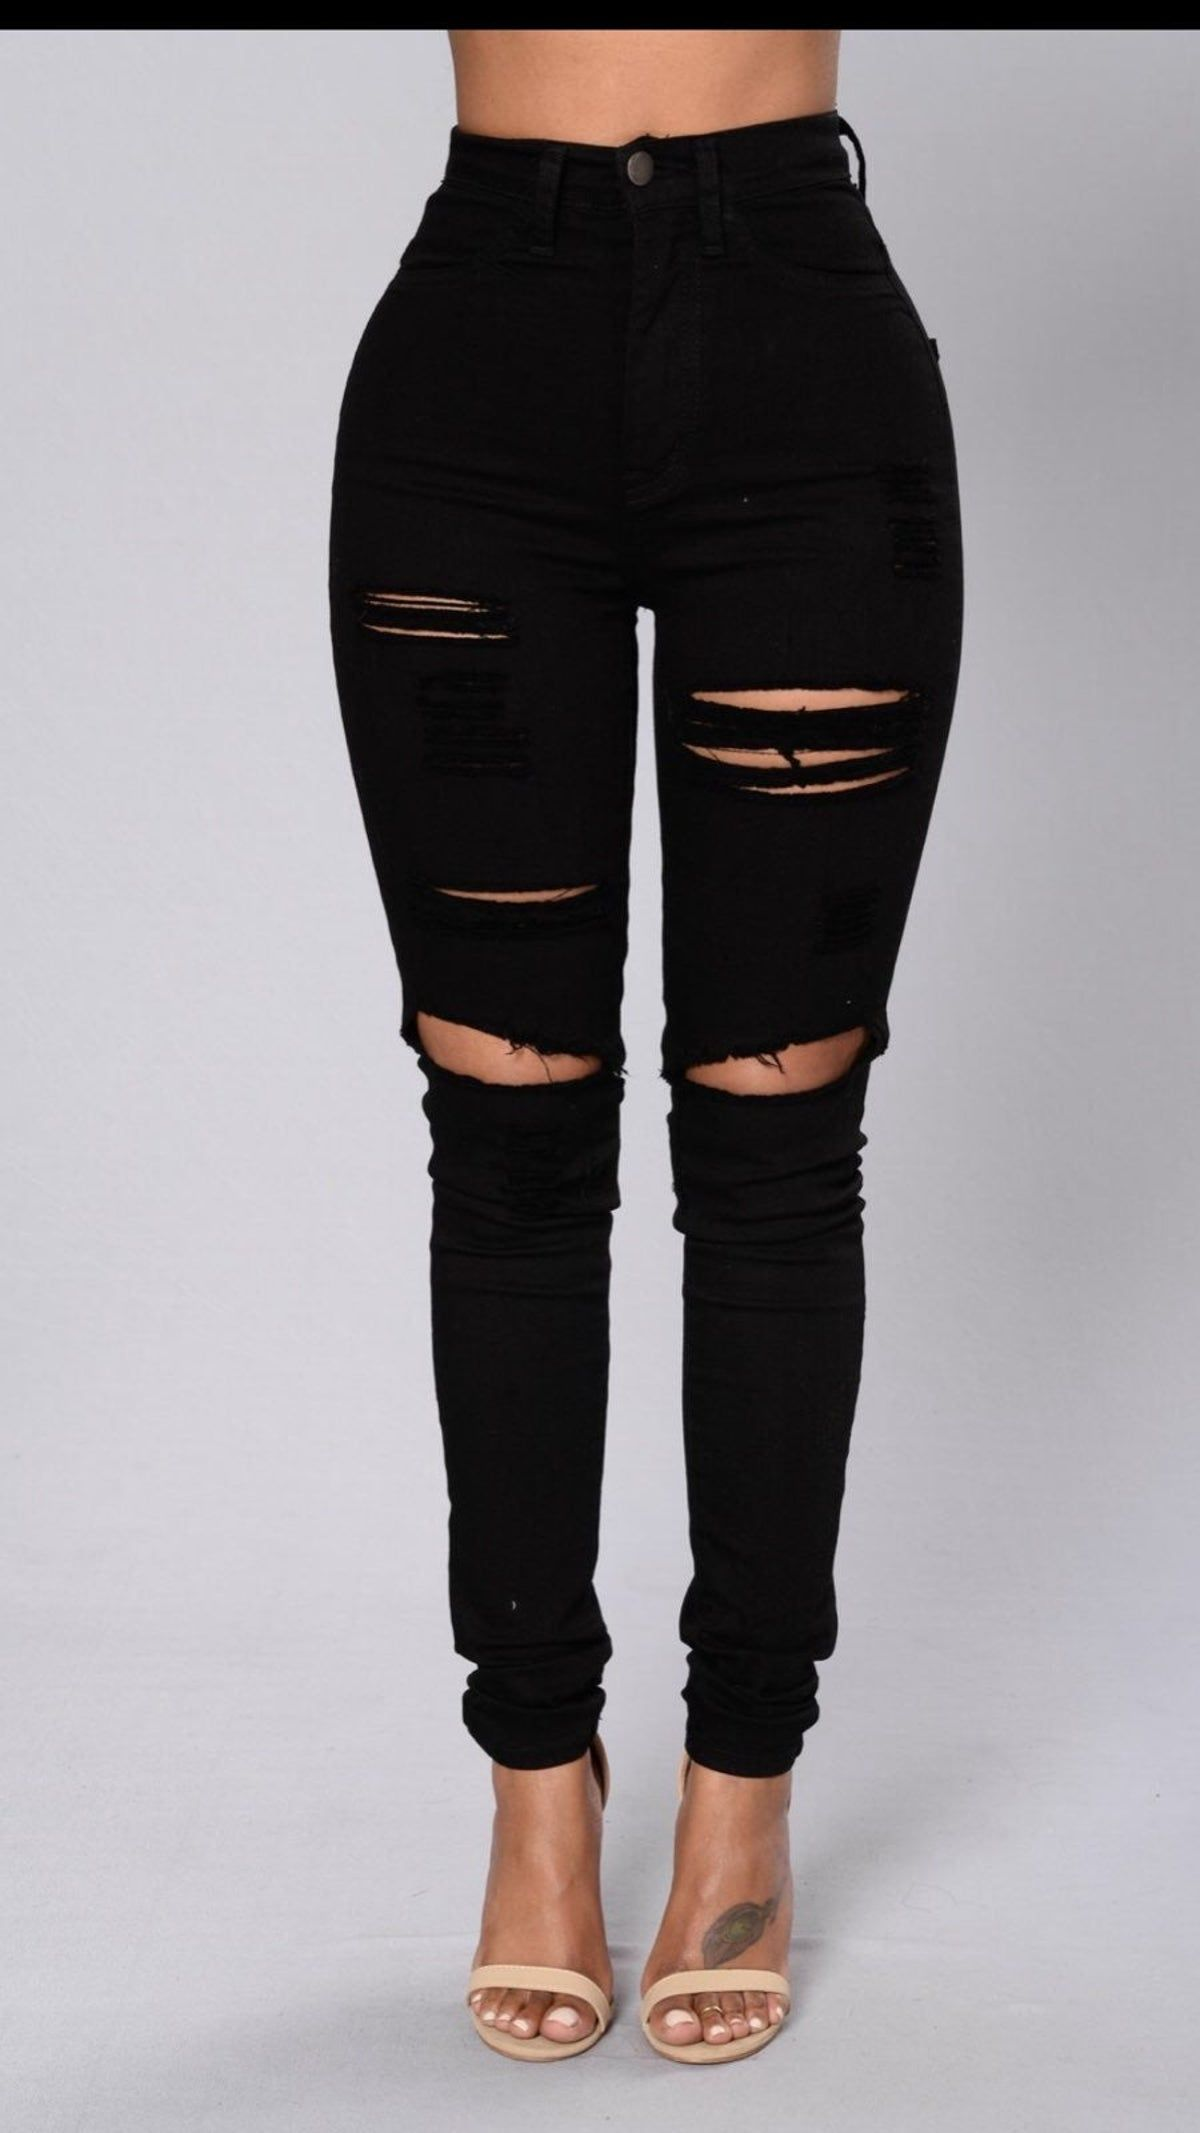 High Waisted-Rise Colored Stretch Skinny Destroyed Ripped Distressed Jeans for Women Olive Mustard RED